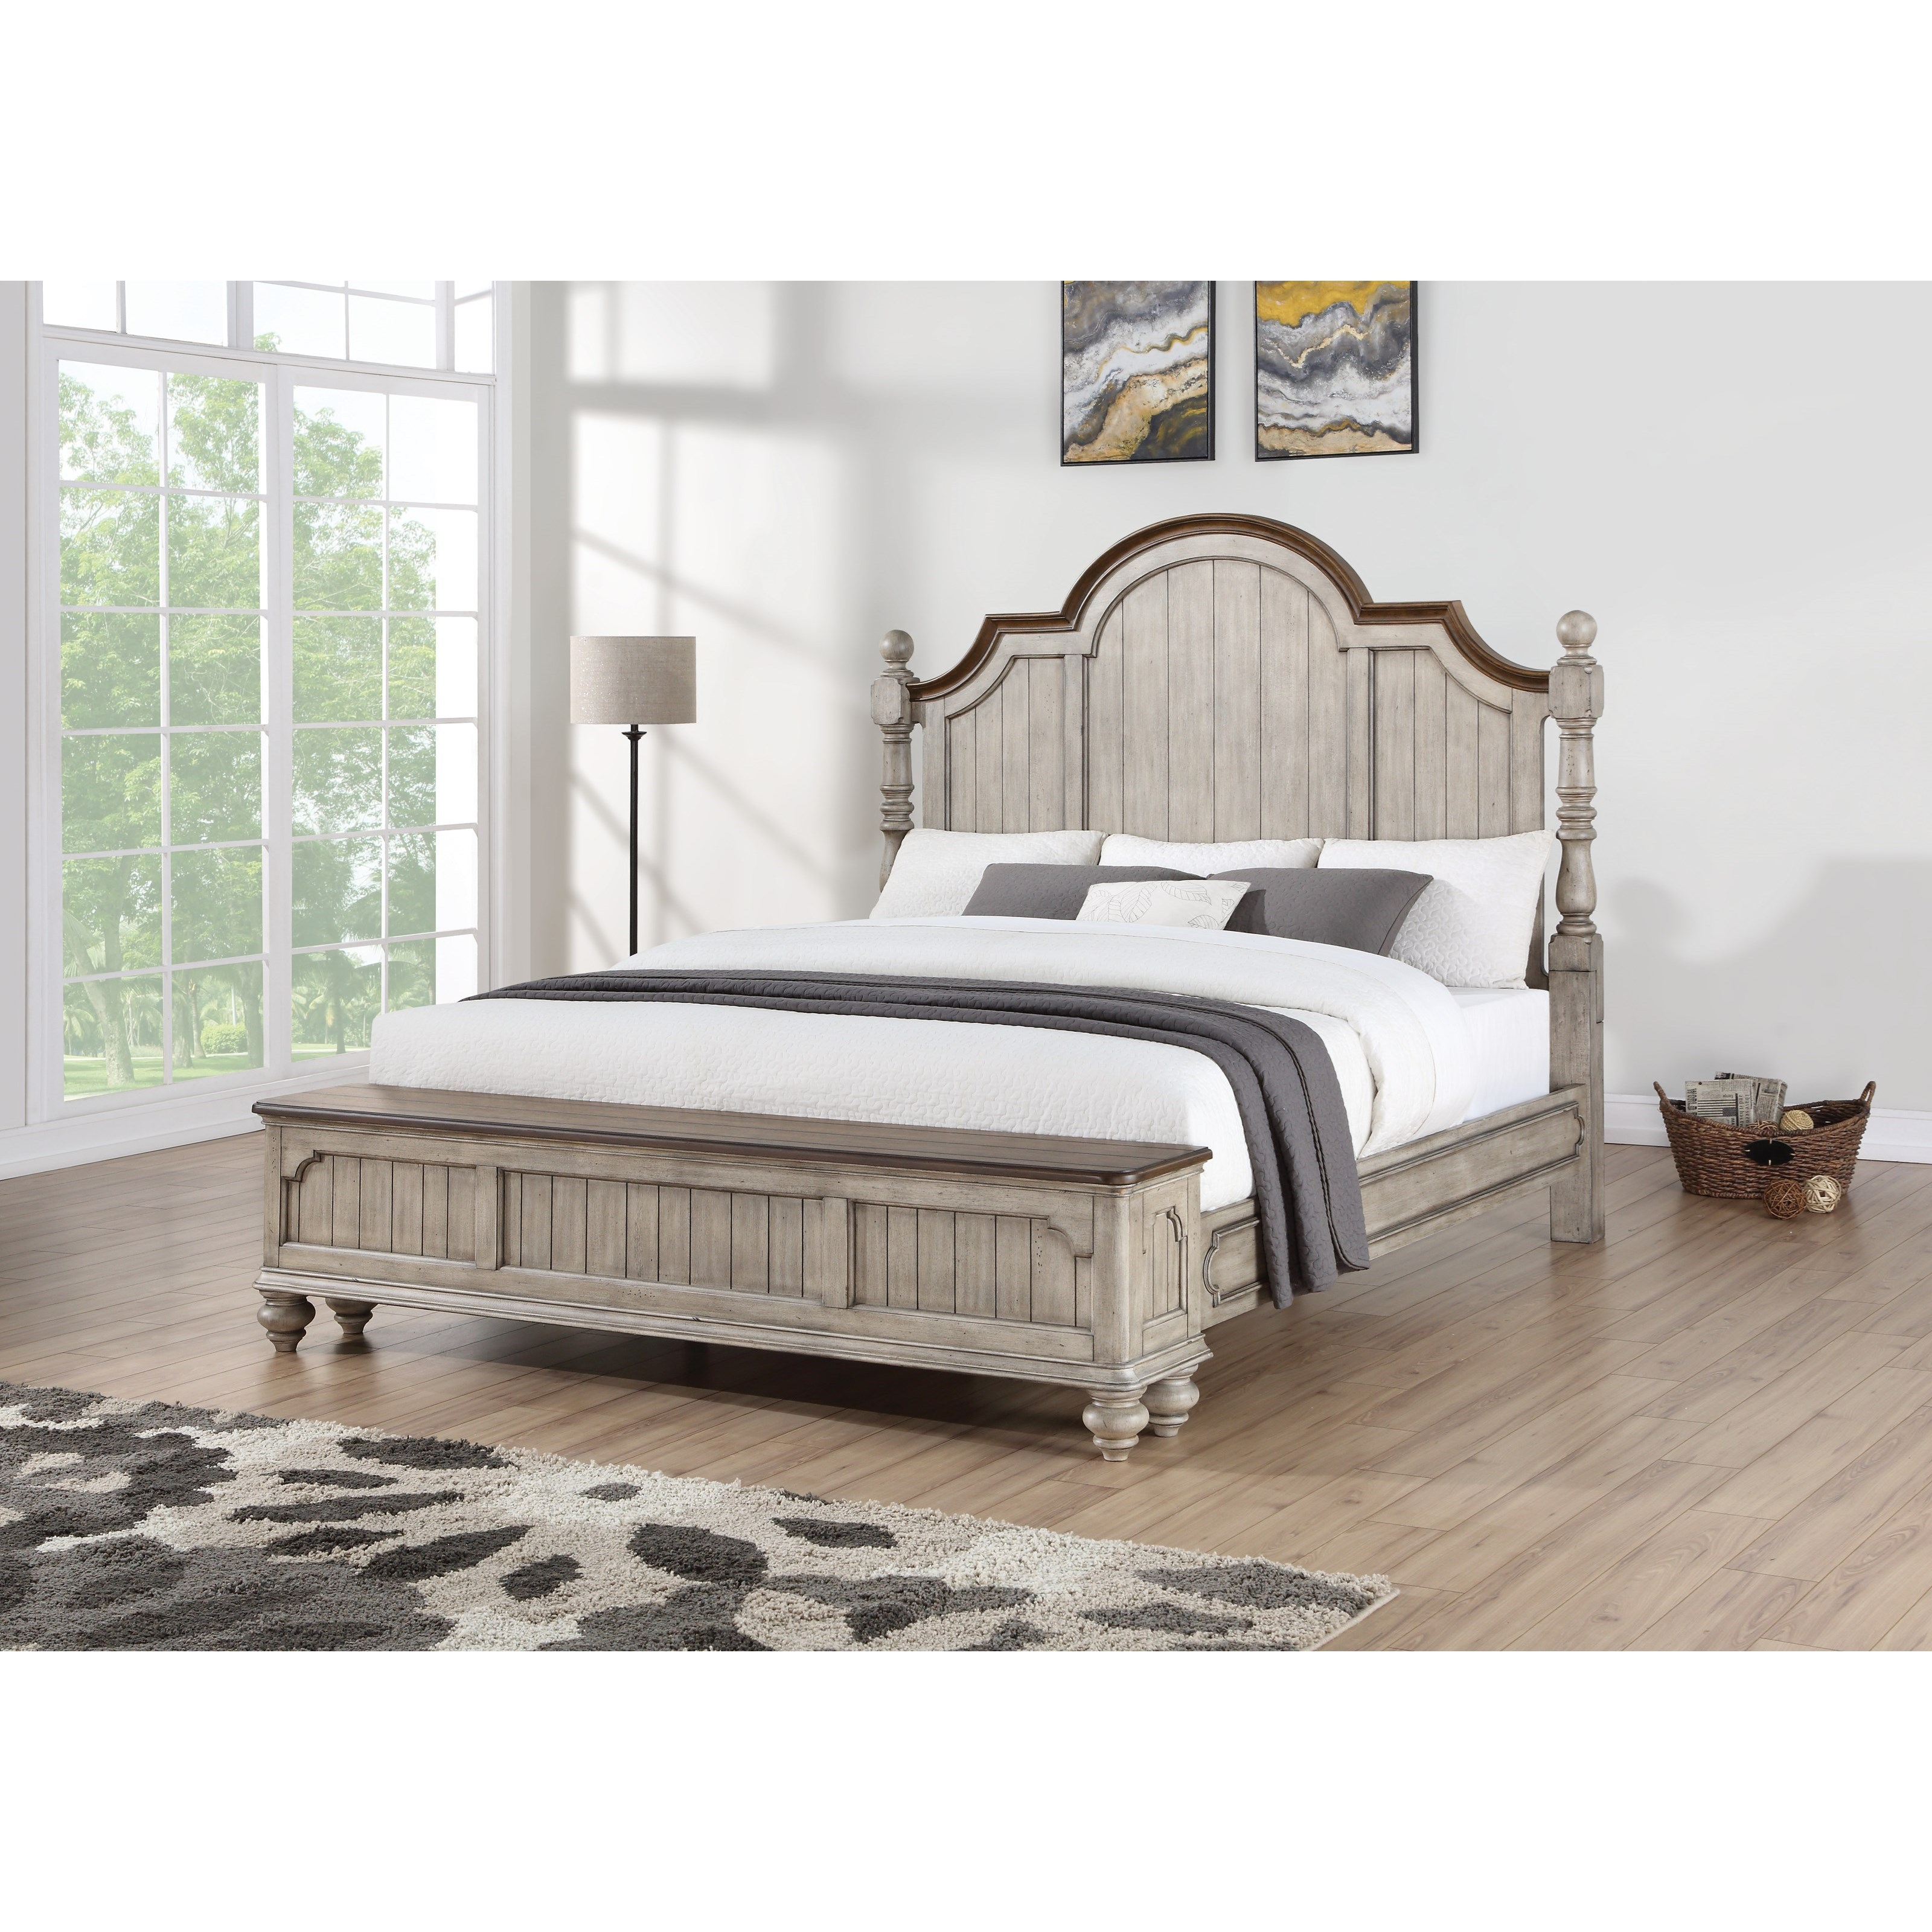 Flexsteel Wynwood Collection Plymouth Relaxed Vintage California King Poster Storage Bed Furniture Superstore Rochester Mn Poster Beds